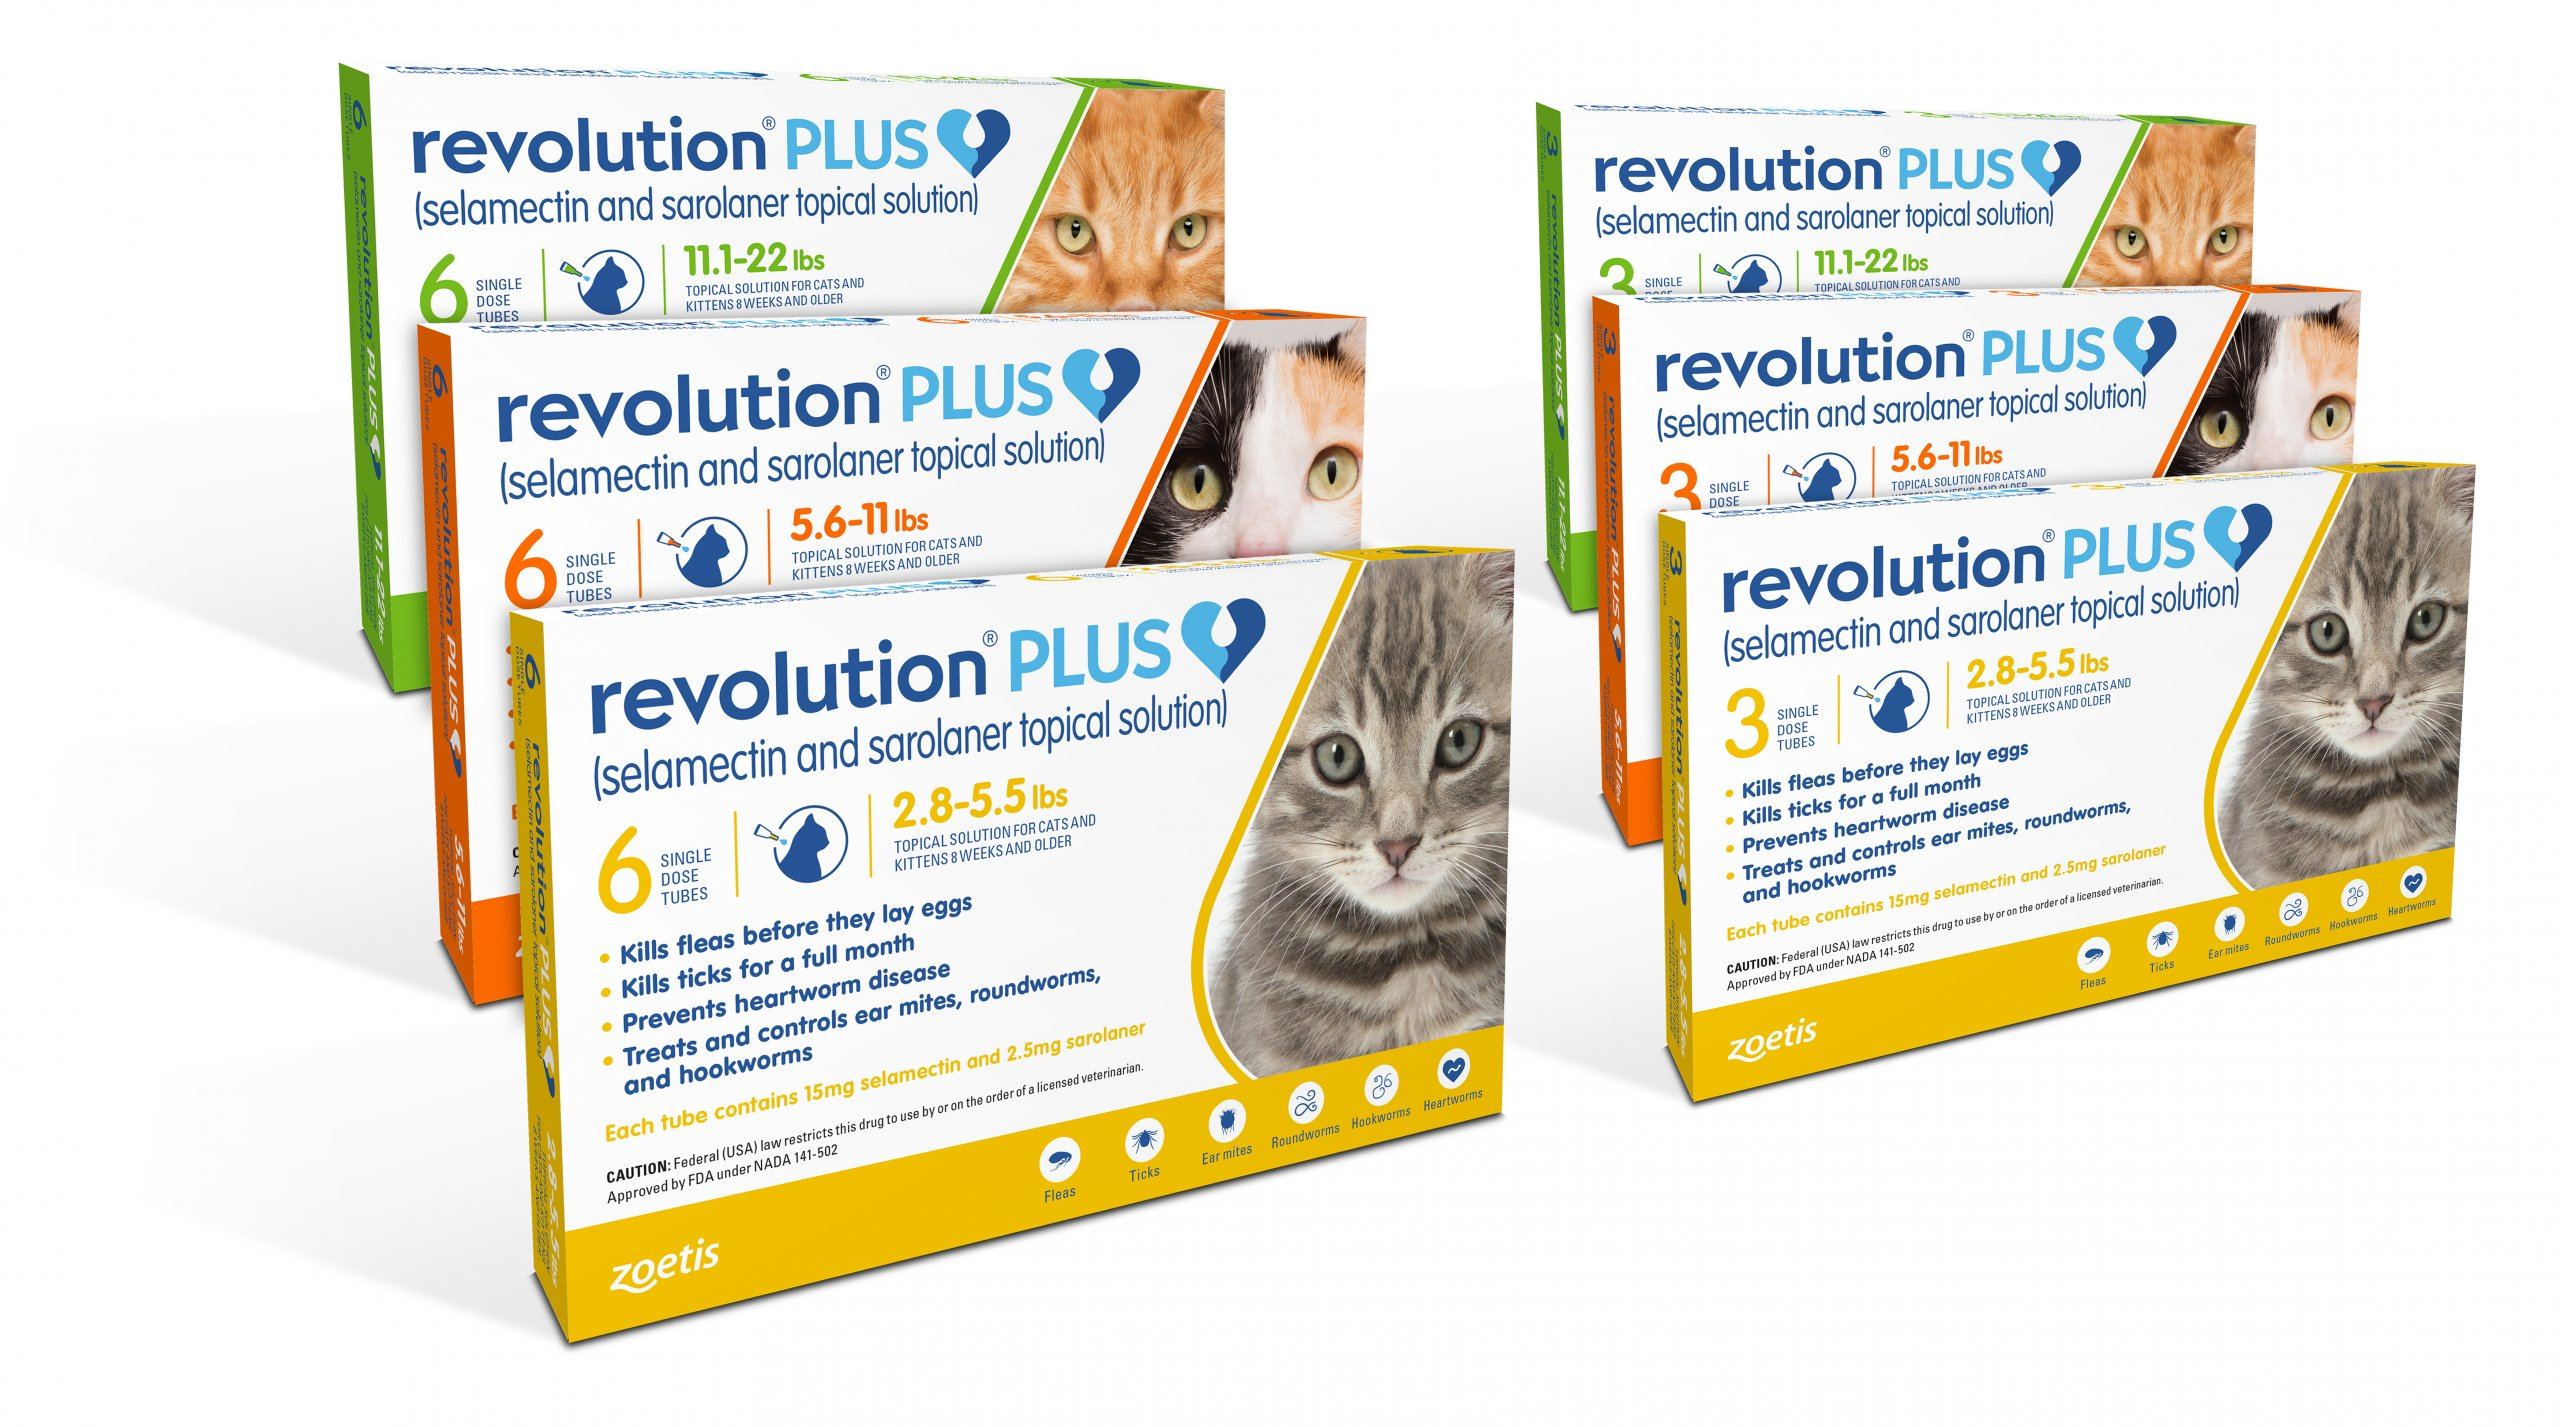 Revolution Plus (Feline) Rx